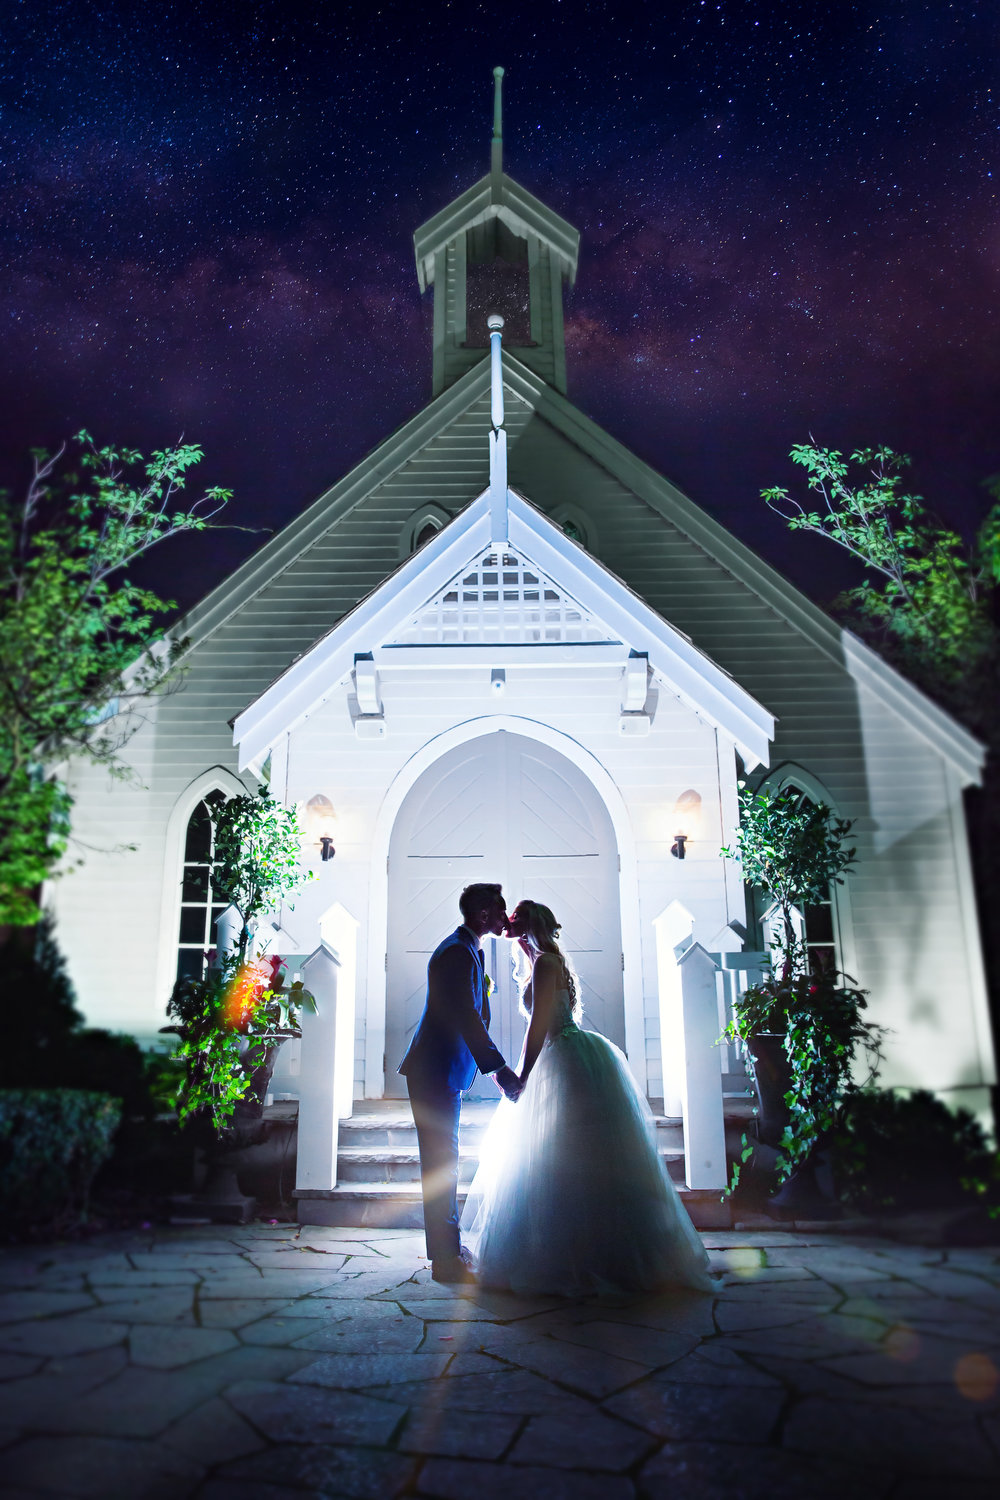 Seriously – one of our favourite venues, couples and nighttime wedding photos!